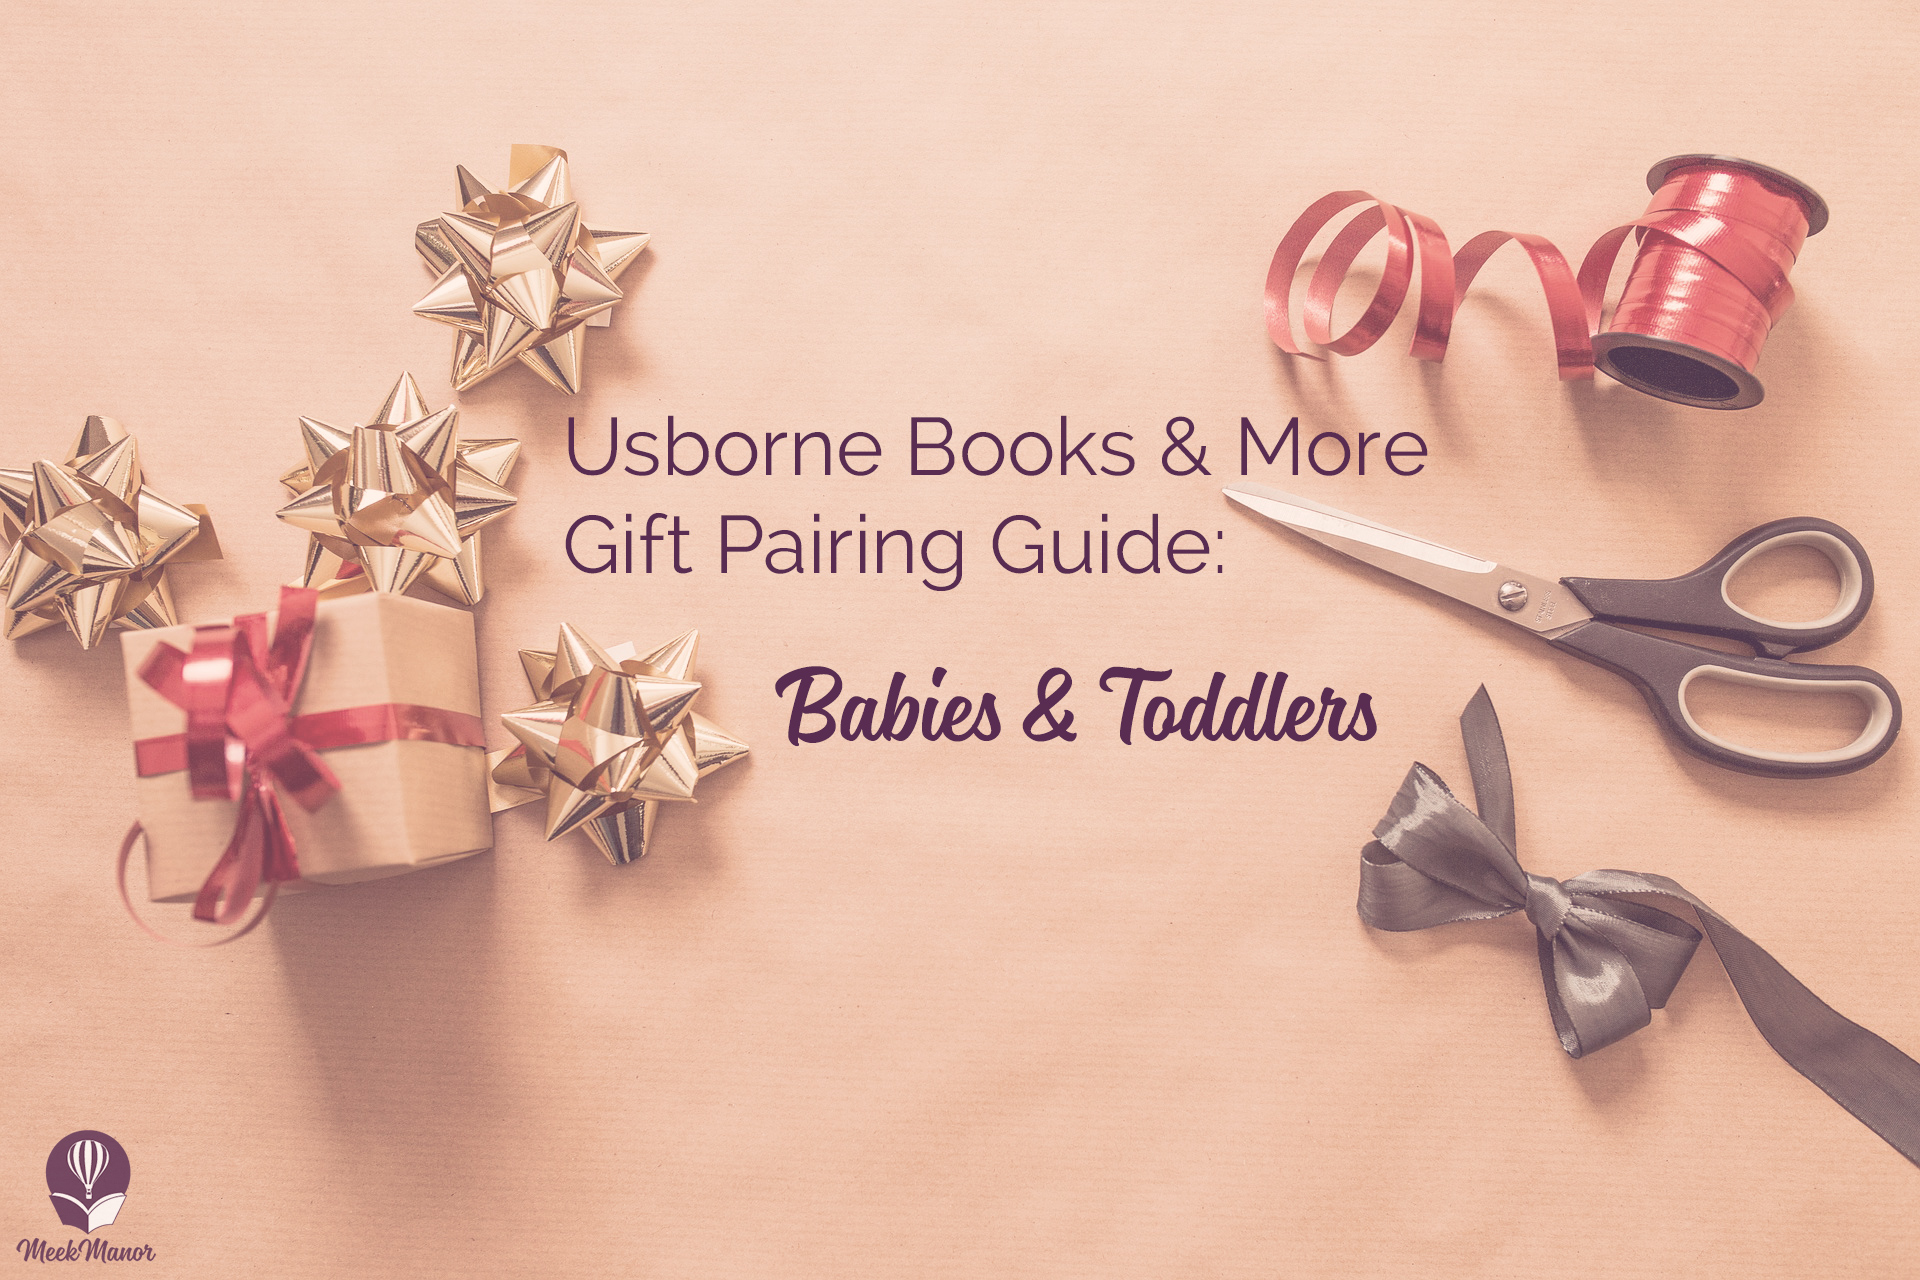 Usborne Books & More Gift Pairing Guide: Babies & Toddlers